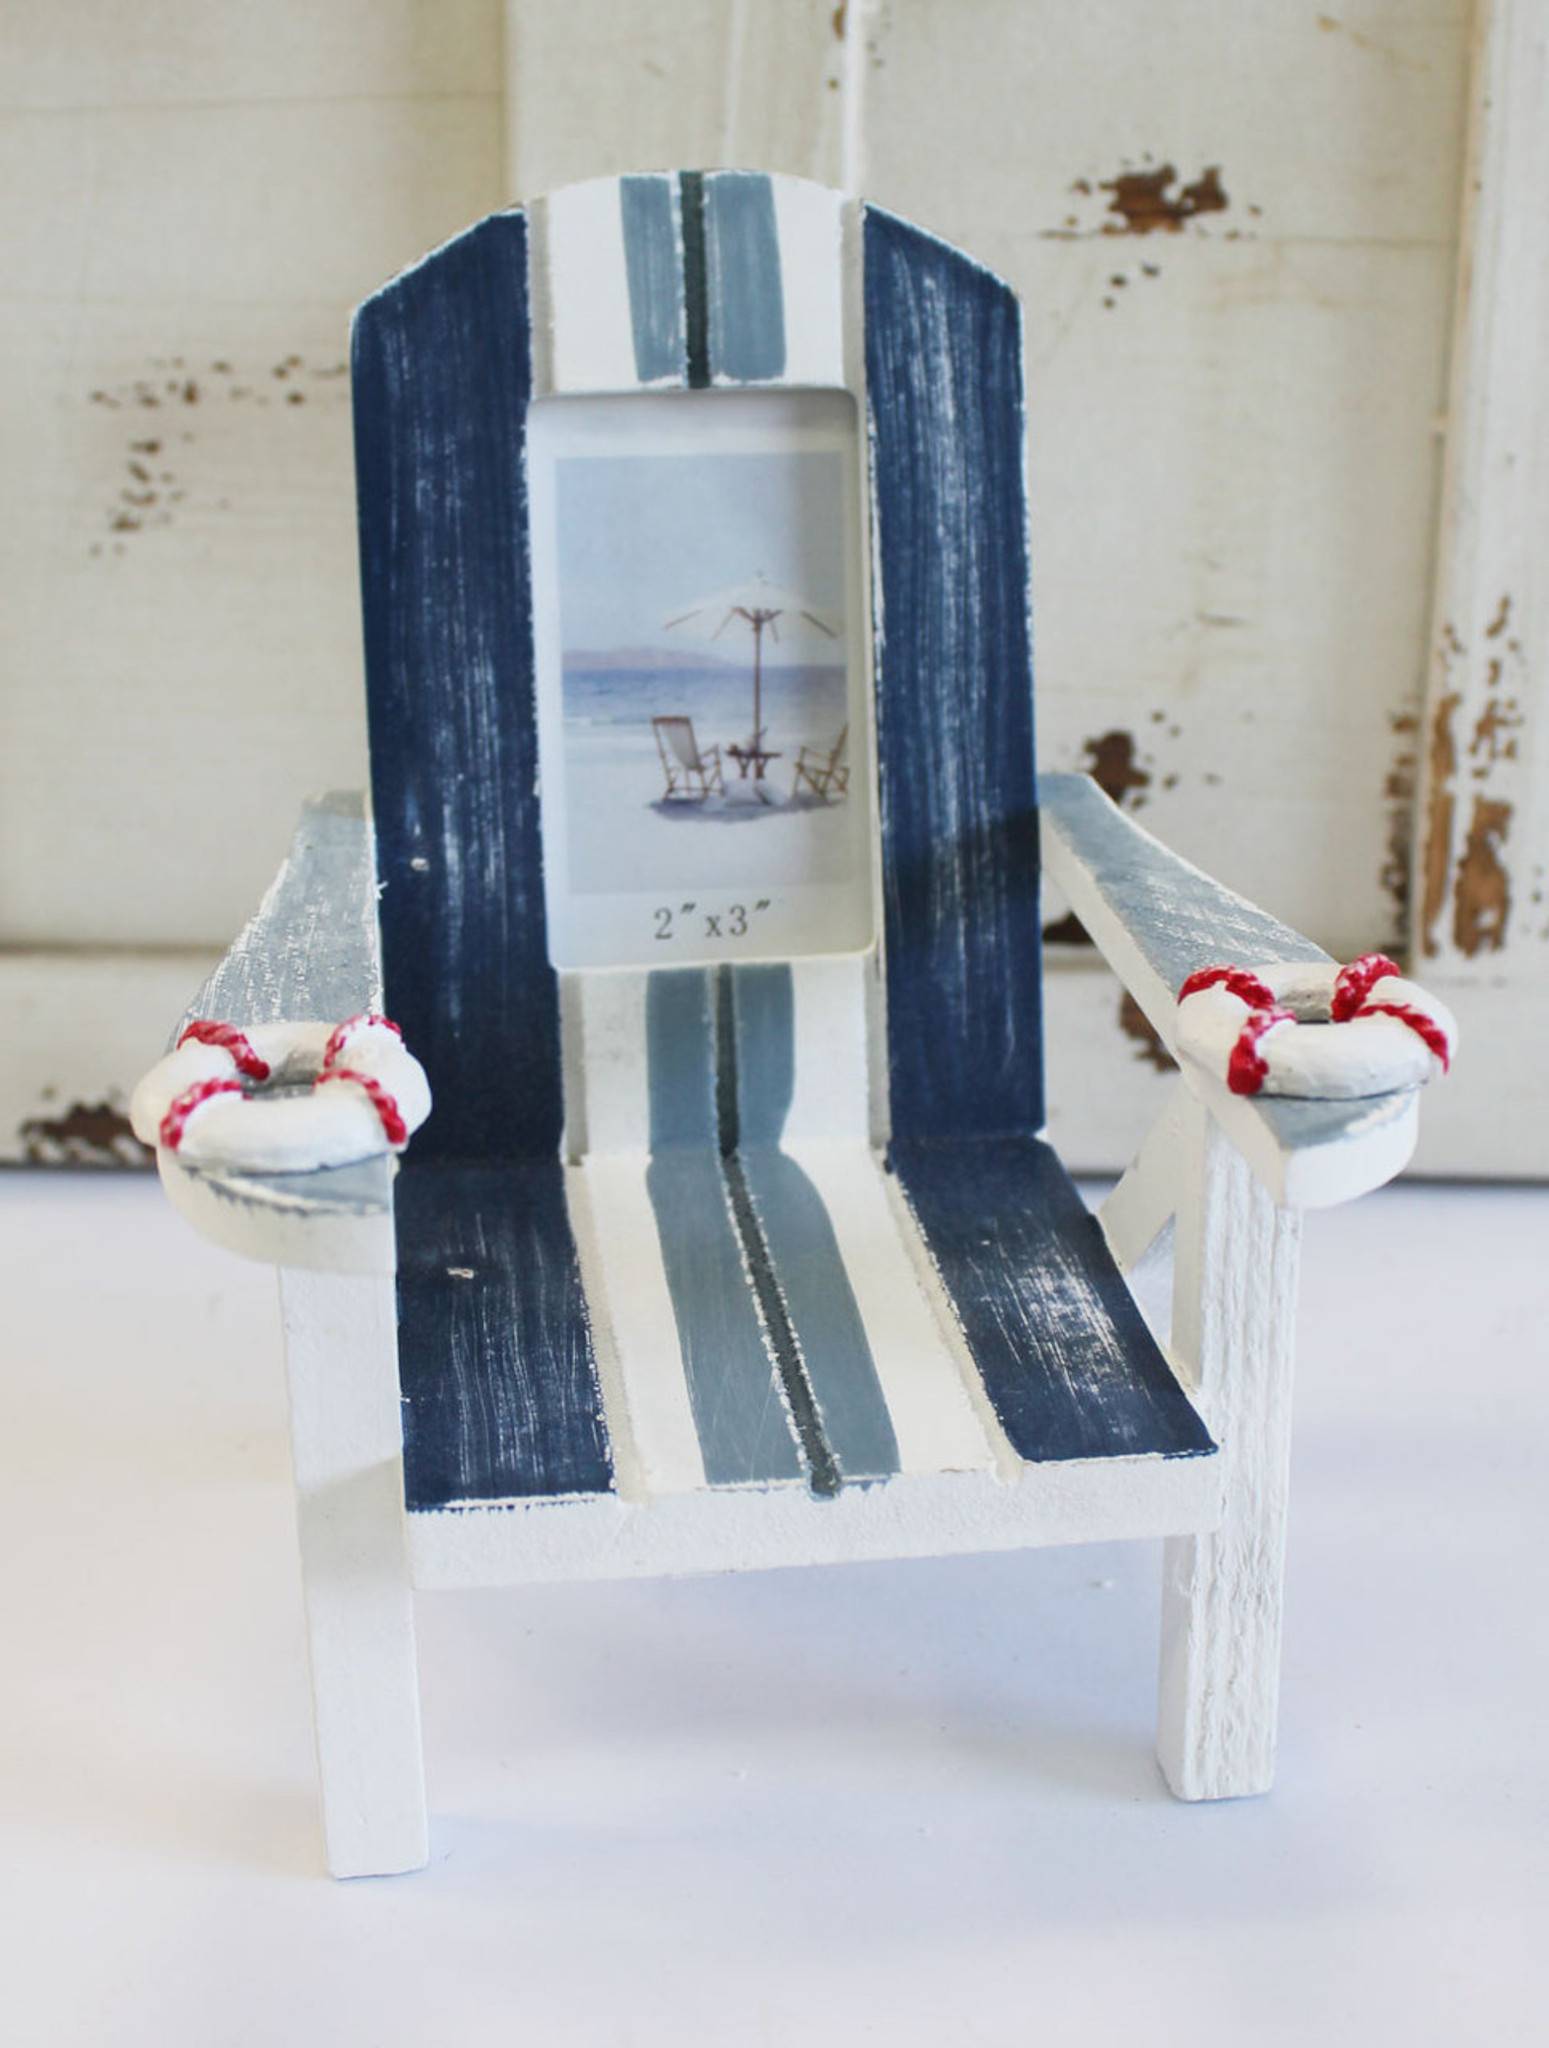 beach chair photo frame indoor wicker chairs white blue 2 x 3 picture nautical